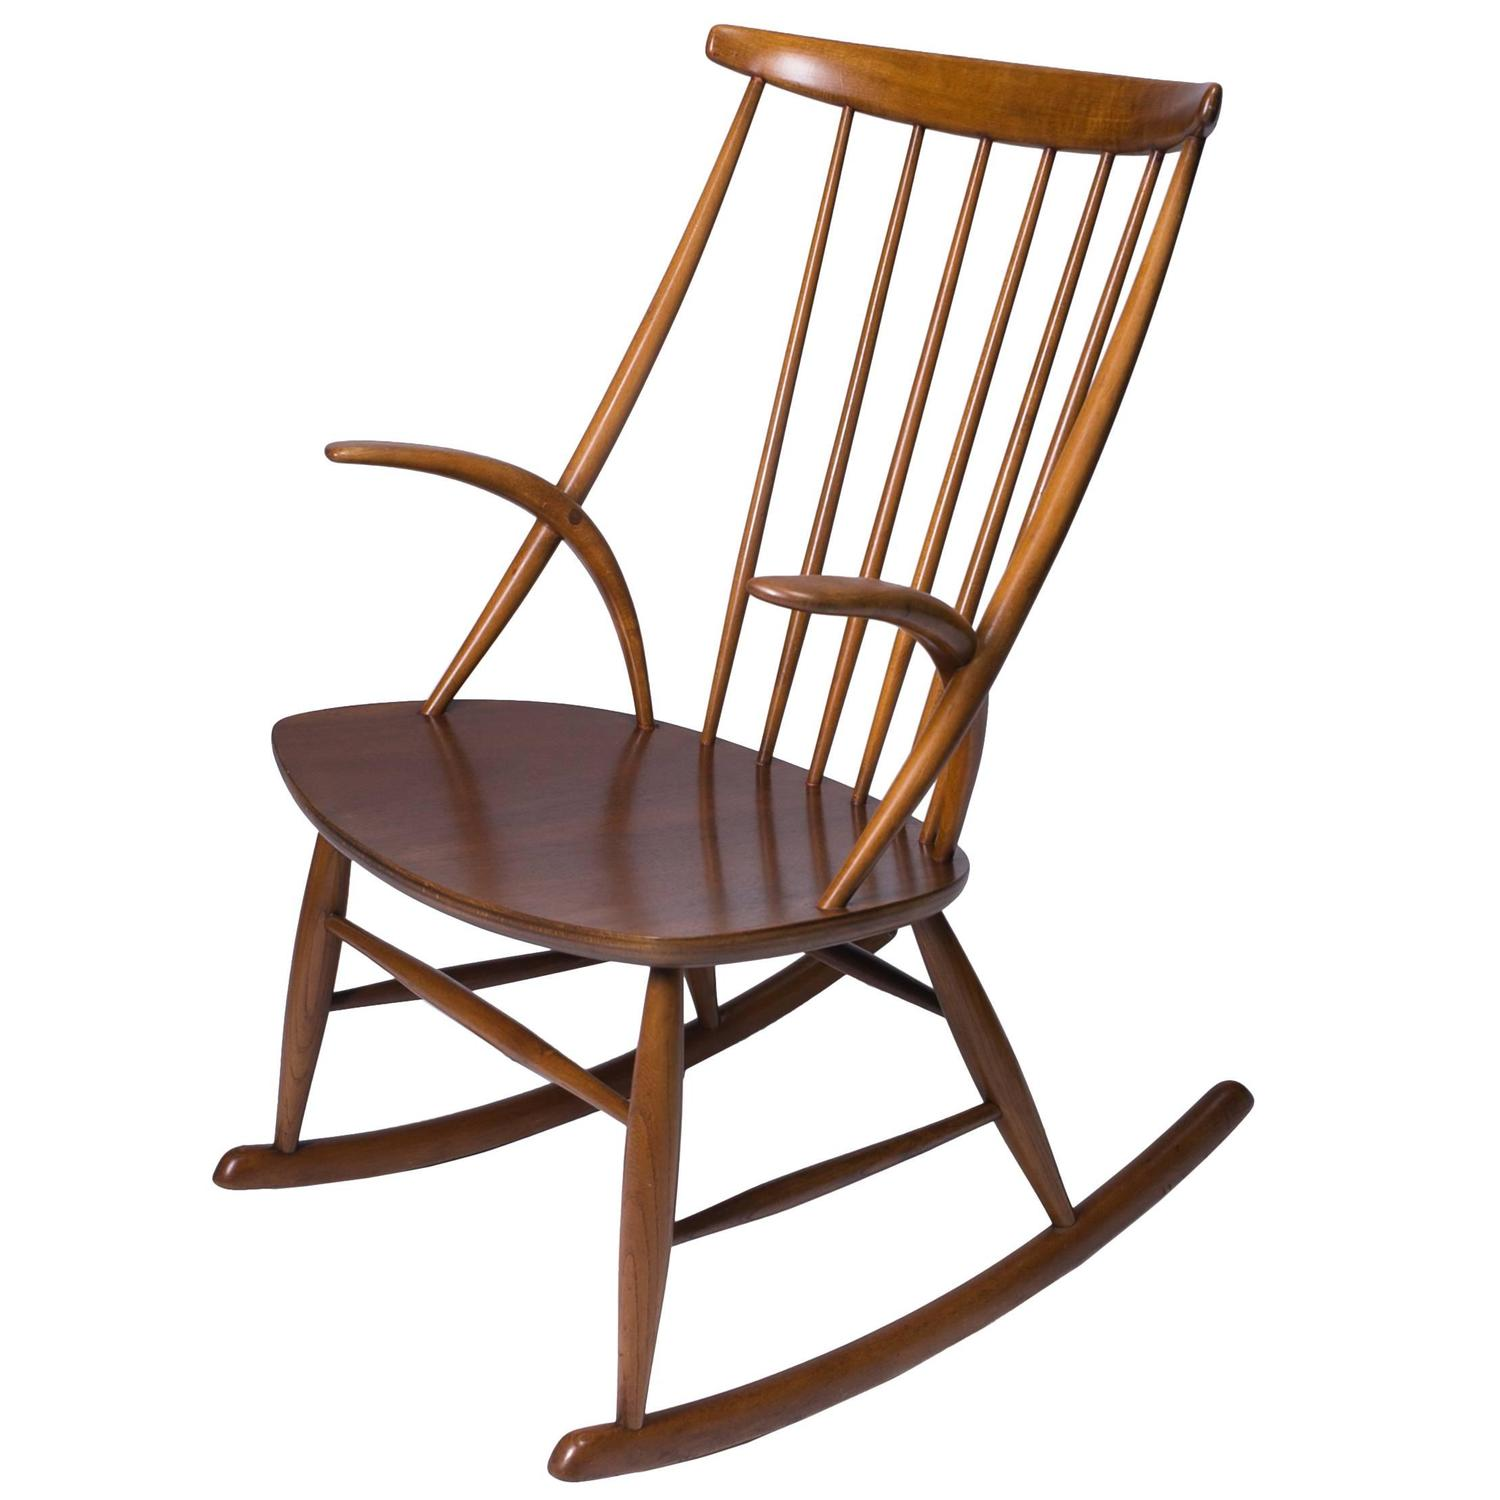 Scandinavian Modern Rocking Chair By Illum Wikkelso At 1stdibs